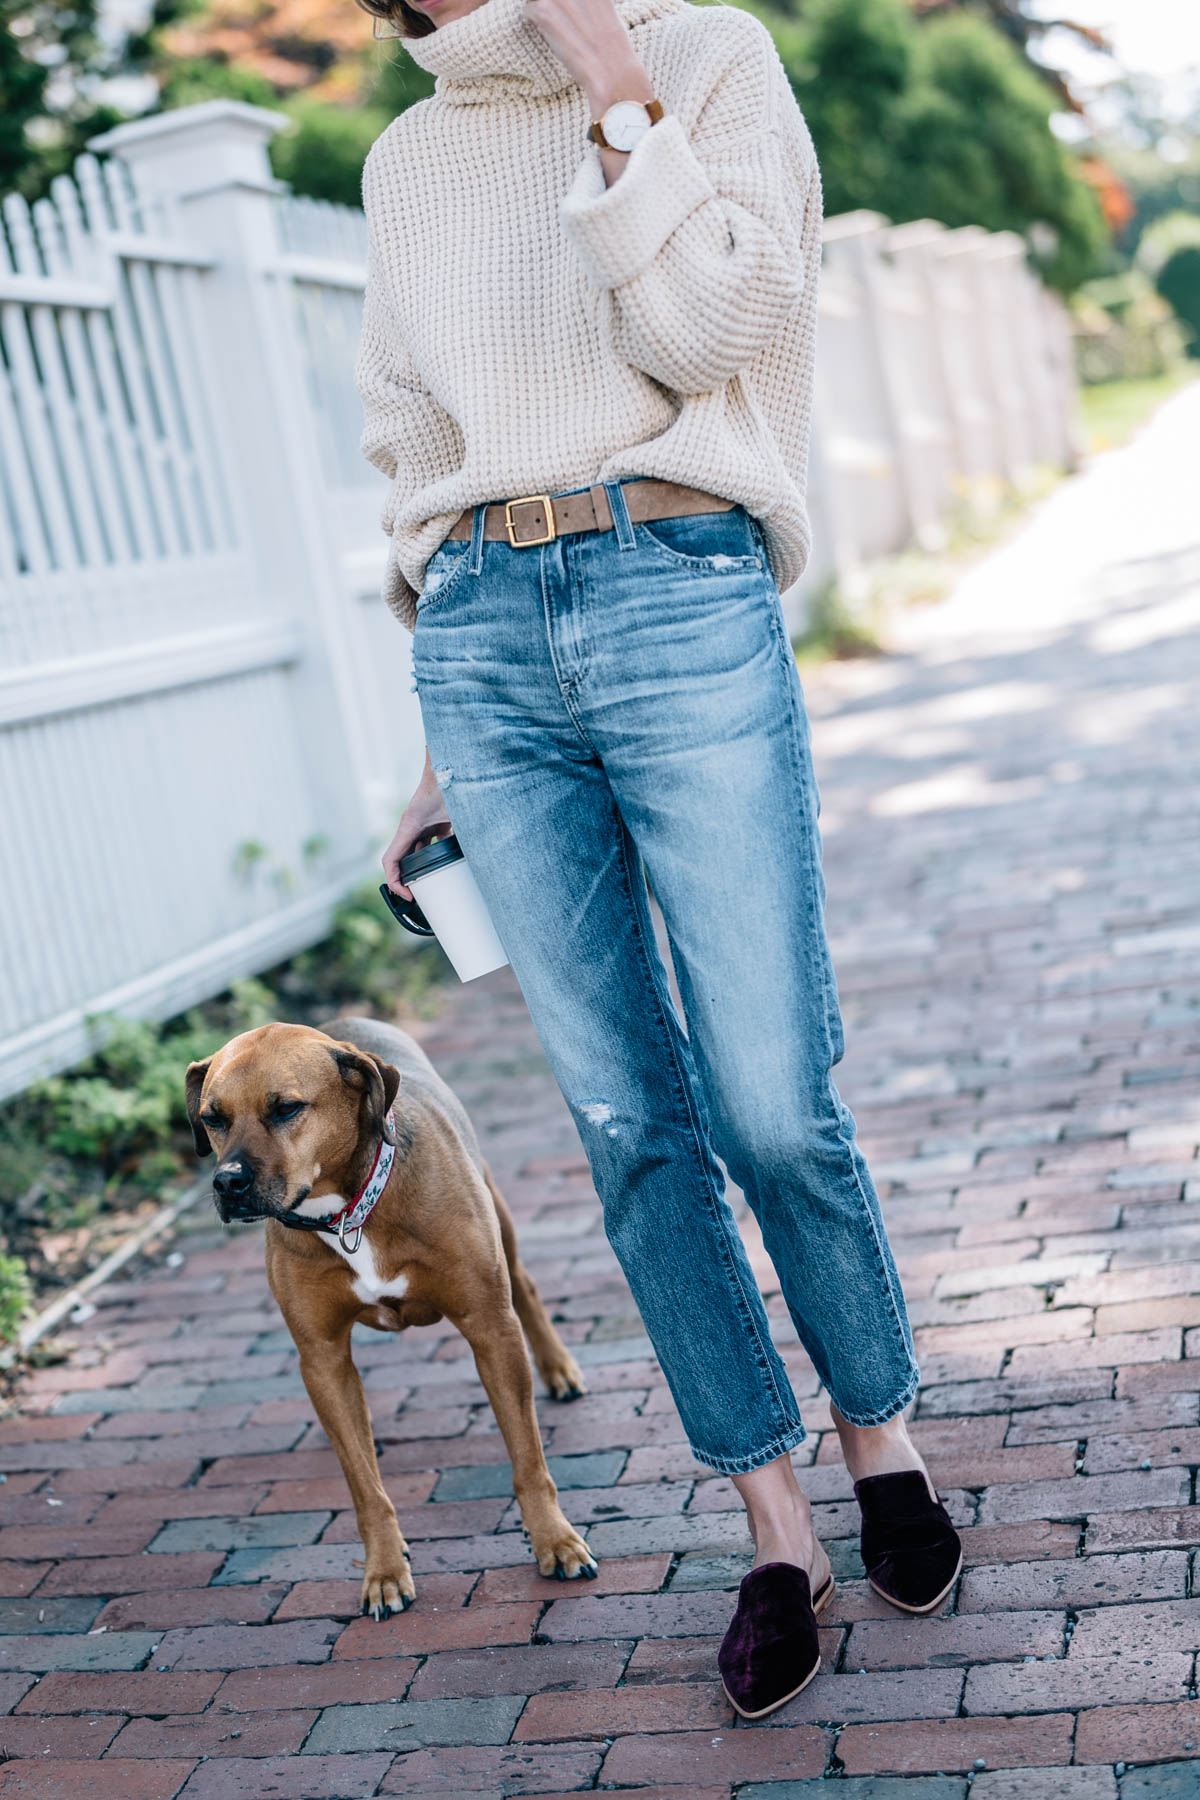 Jess Ann Kirby's fall style in a chunky knit turtleneck sweater, rag and bone leather belt and madewell velvet mules